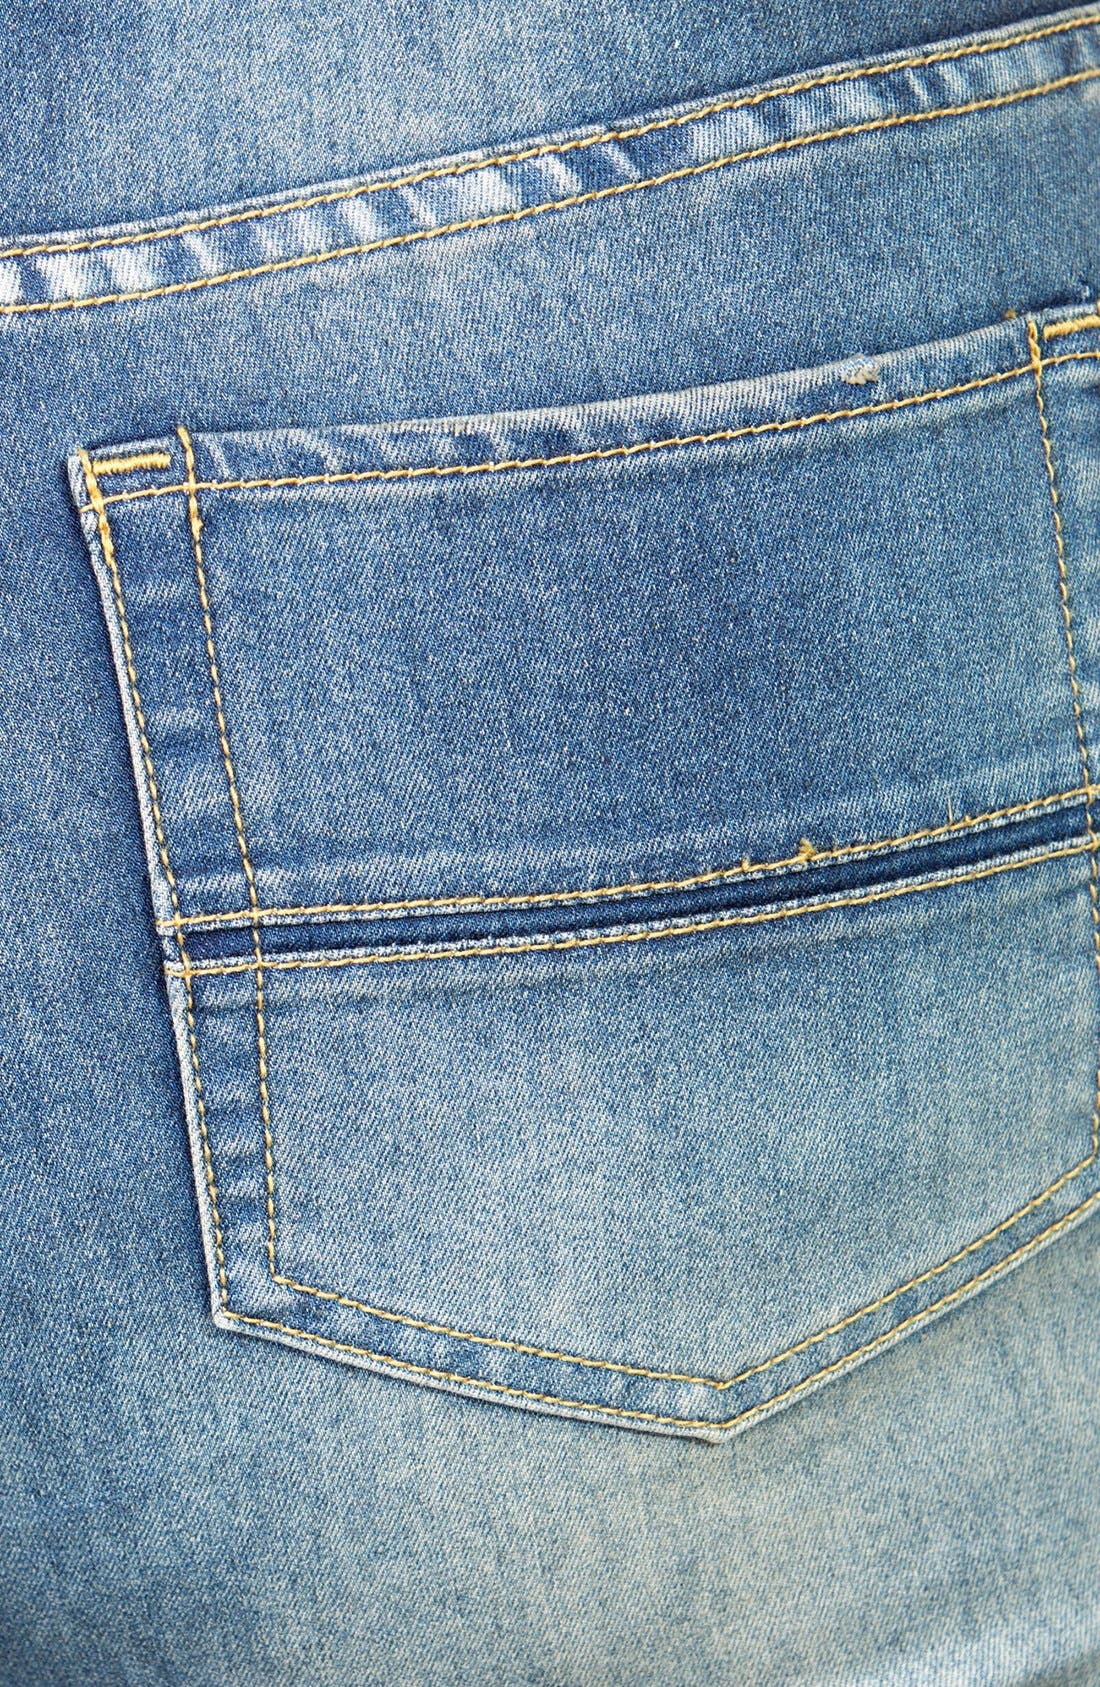 Alternate Image 3  - City Chic Soft Wash Bootcut Jeans (Mid Denim) (Plus Size)